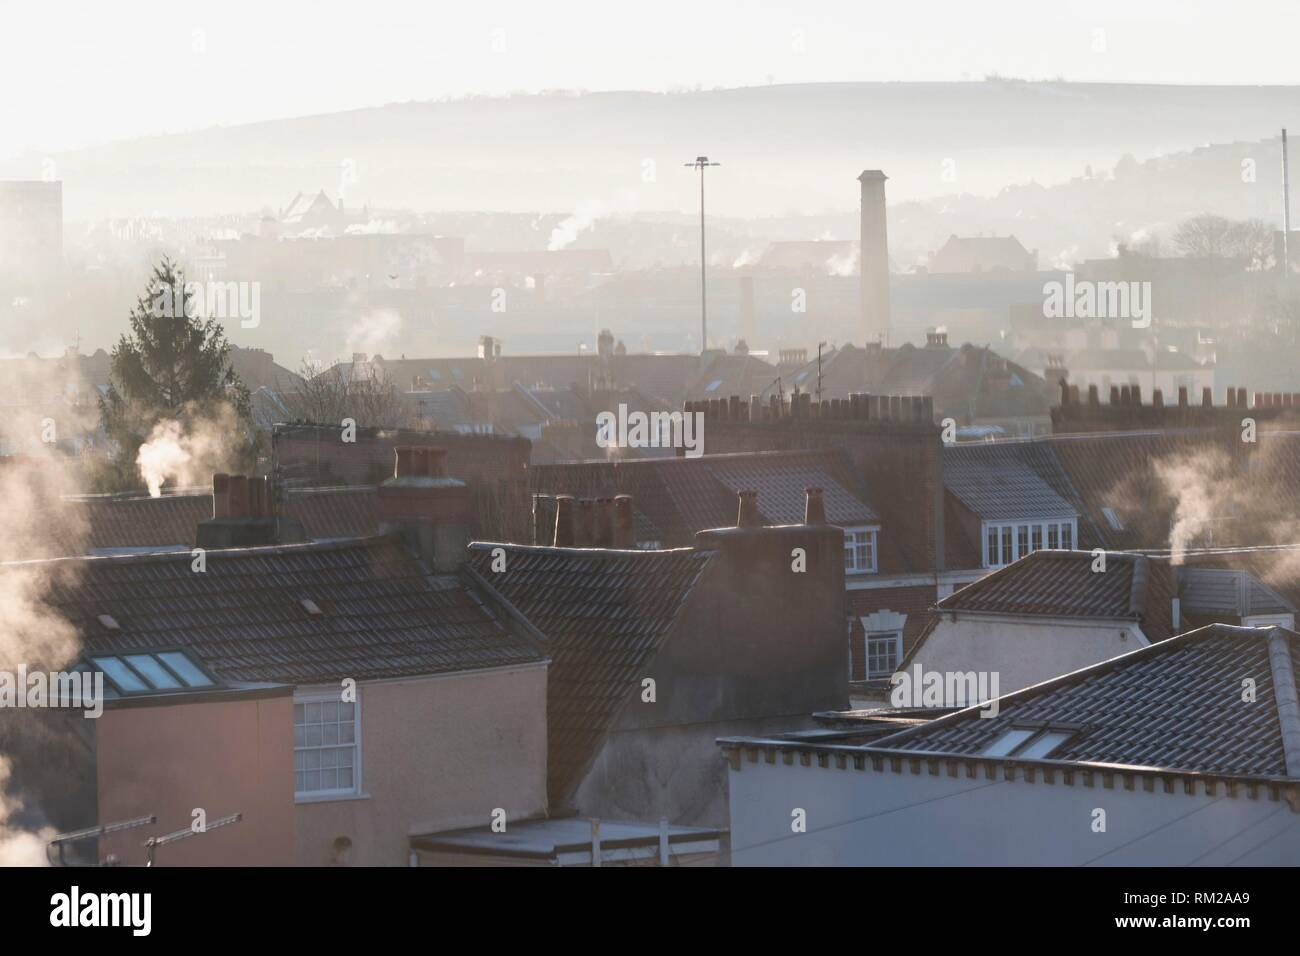 Frosty rooftops, smoking chimneys and muted tones as the sun rises over the harbour in Hotwells, Bristol, England. - Stock Image